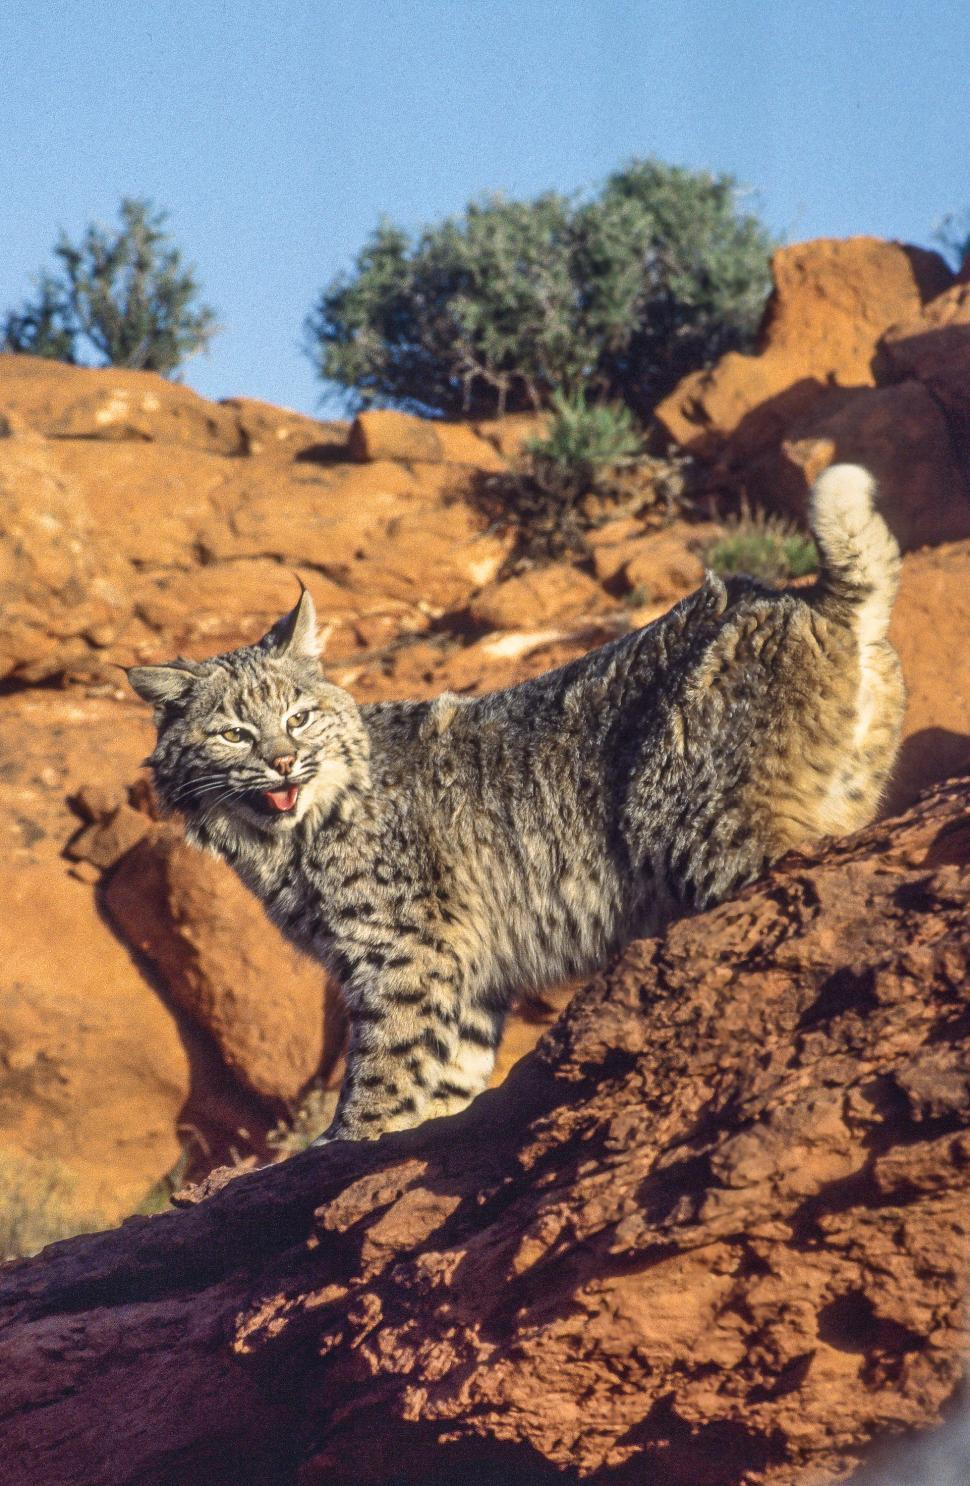 Download Free Stock HD Photo of Bobcat on a rock Online